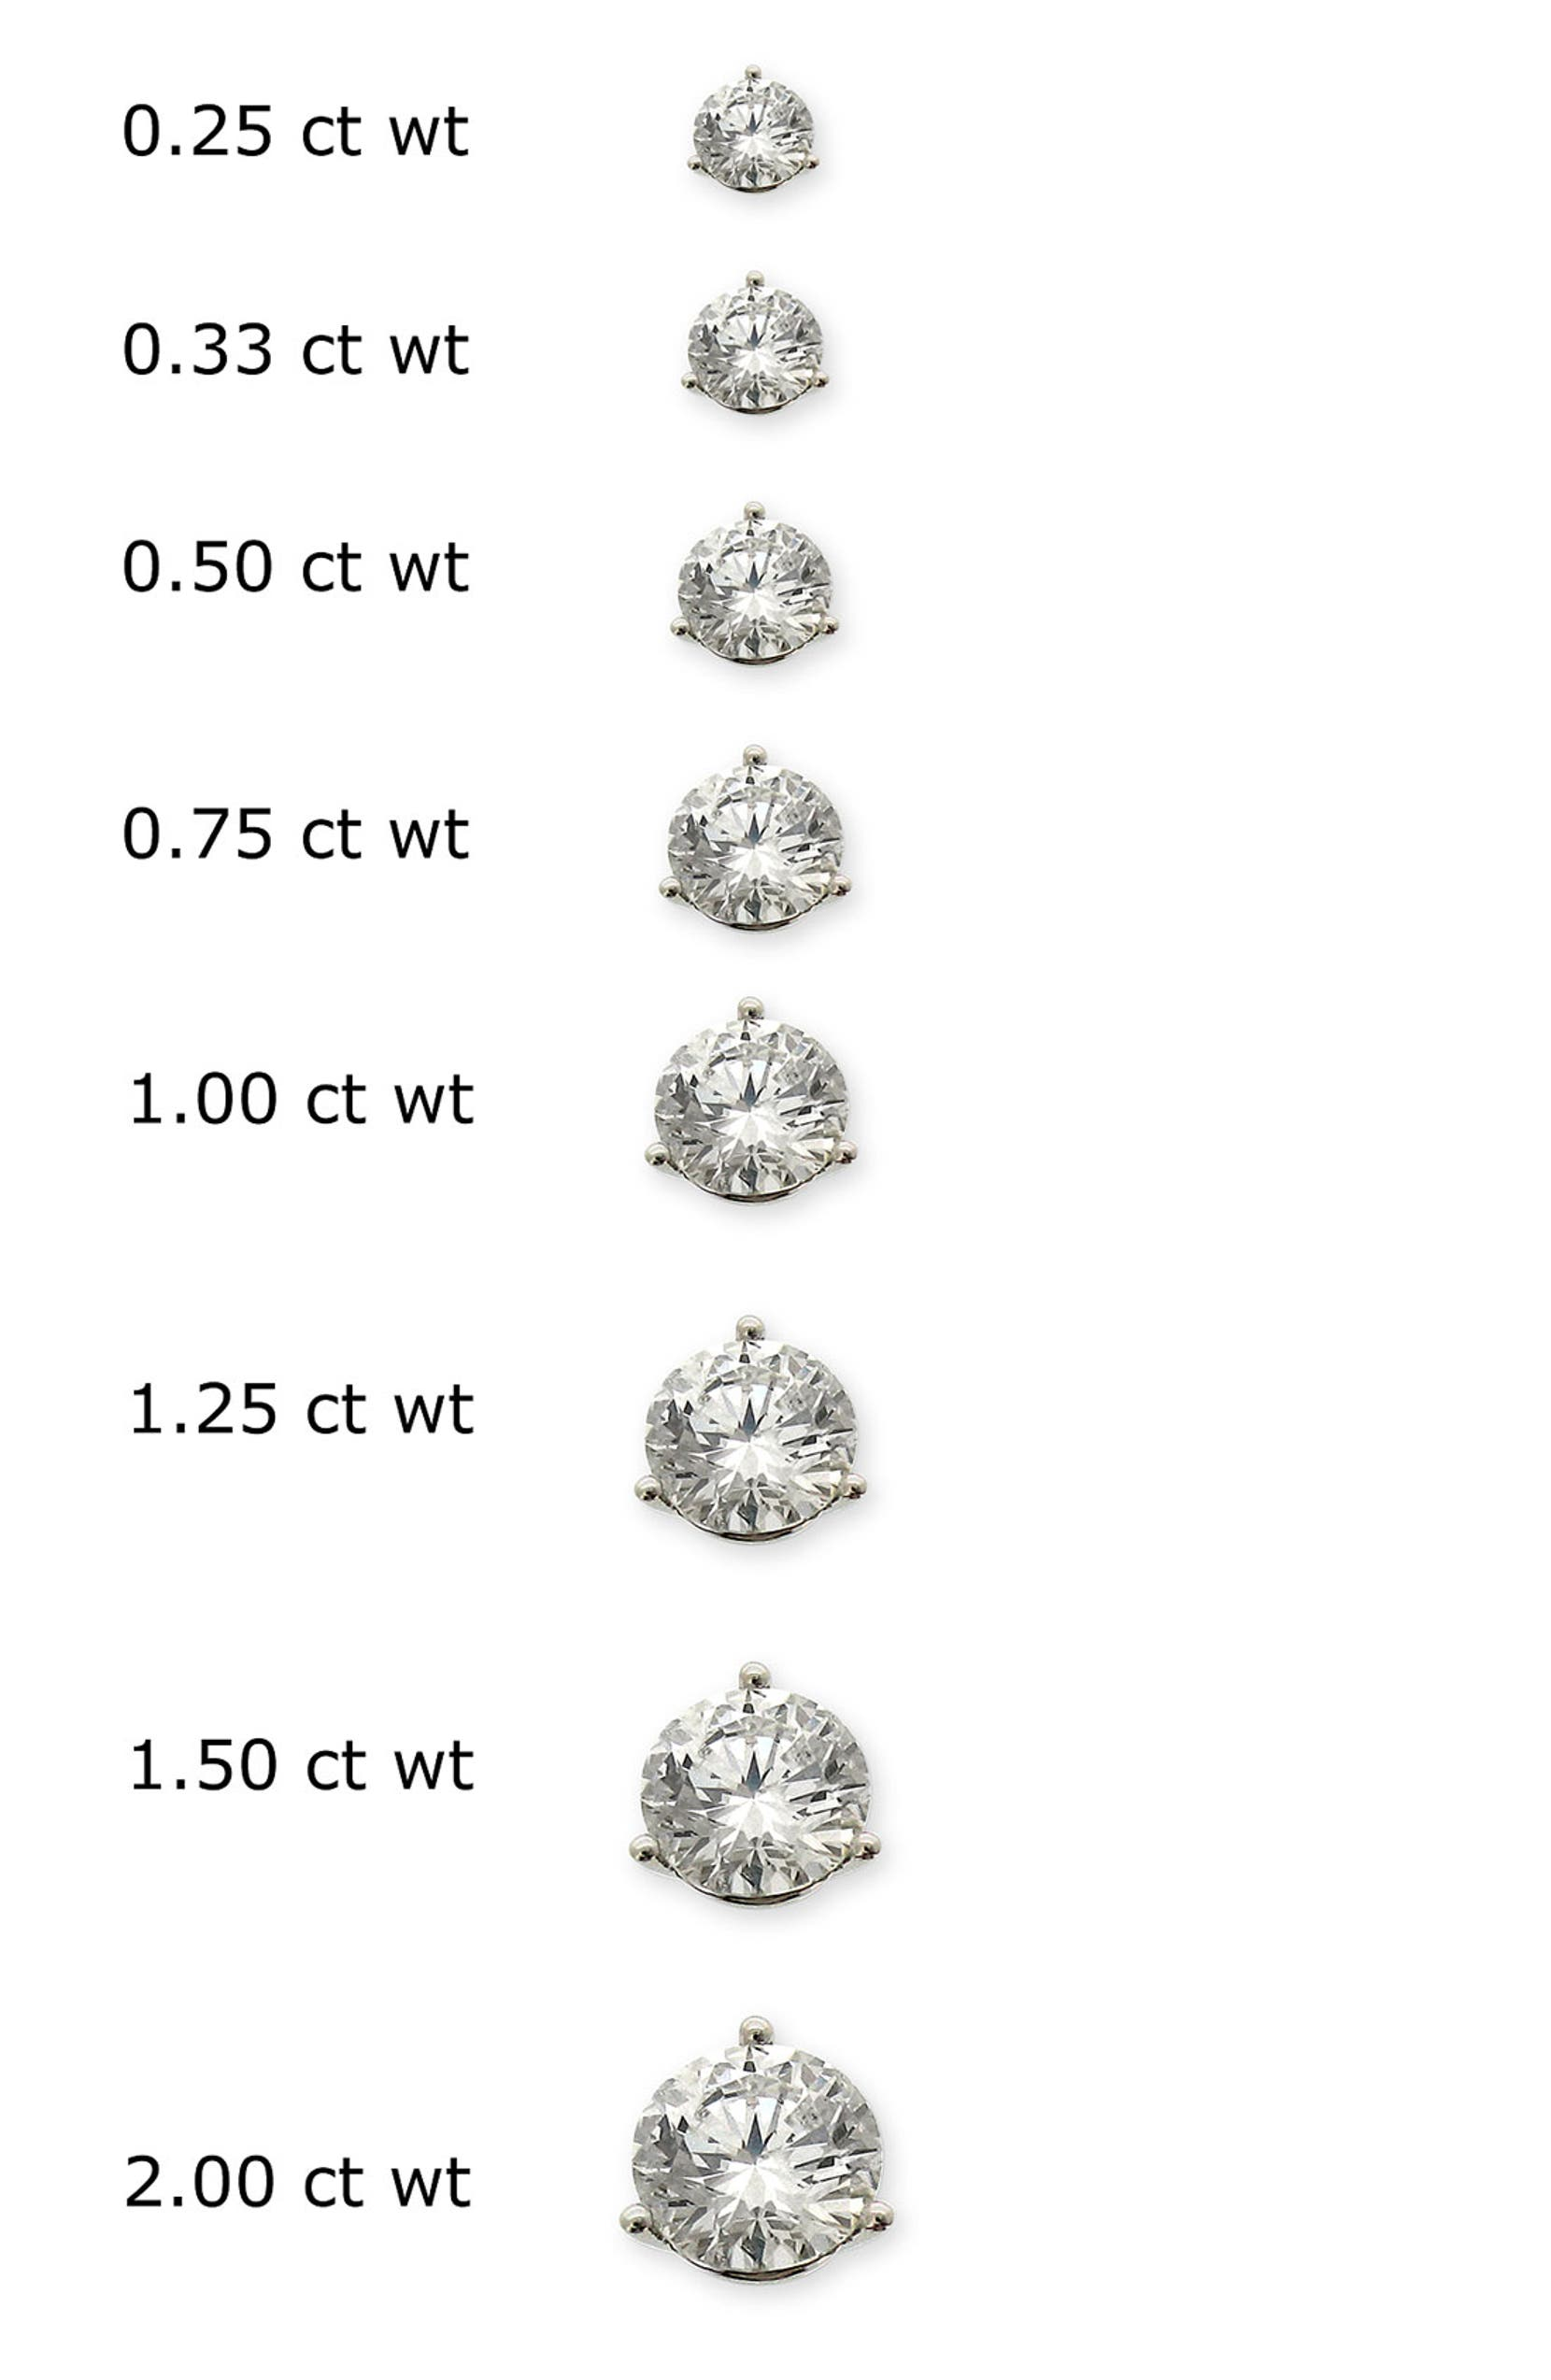 1 2 Carat Diamond Earrings Actual Size Actual Size Of 1 4